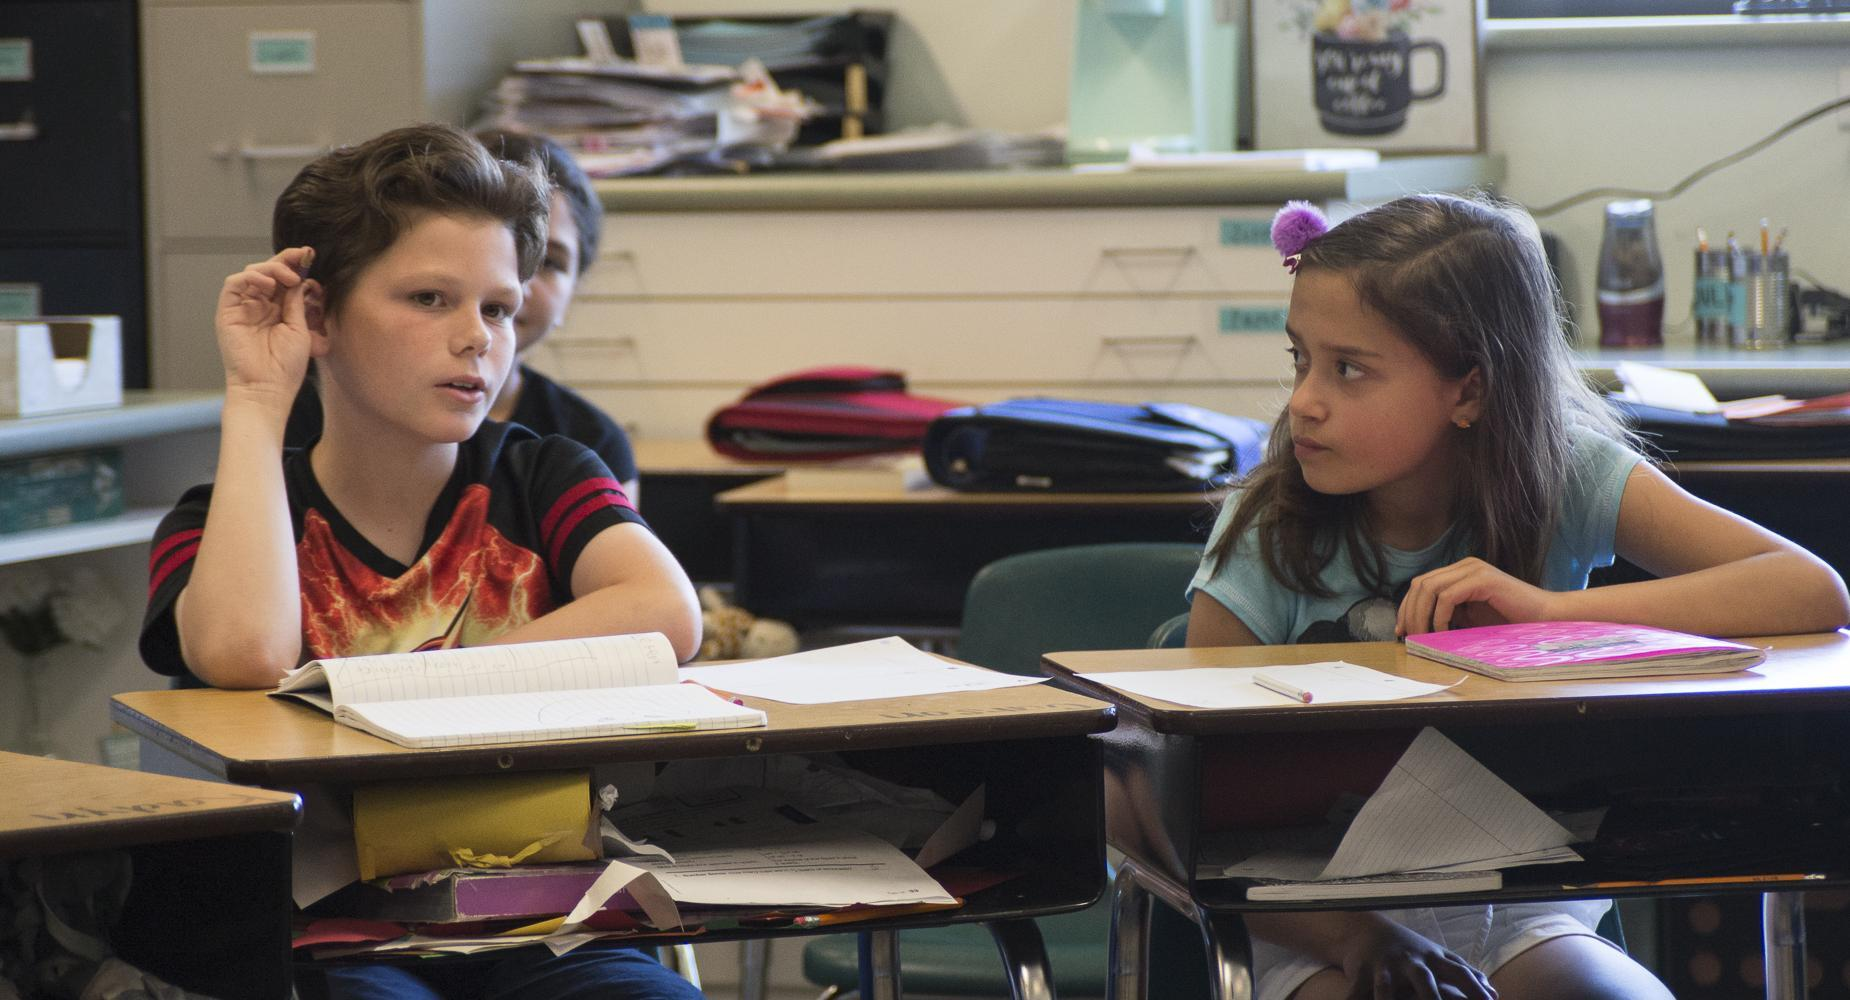 A girl watches a boy answer a question at his desk